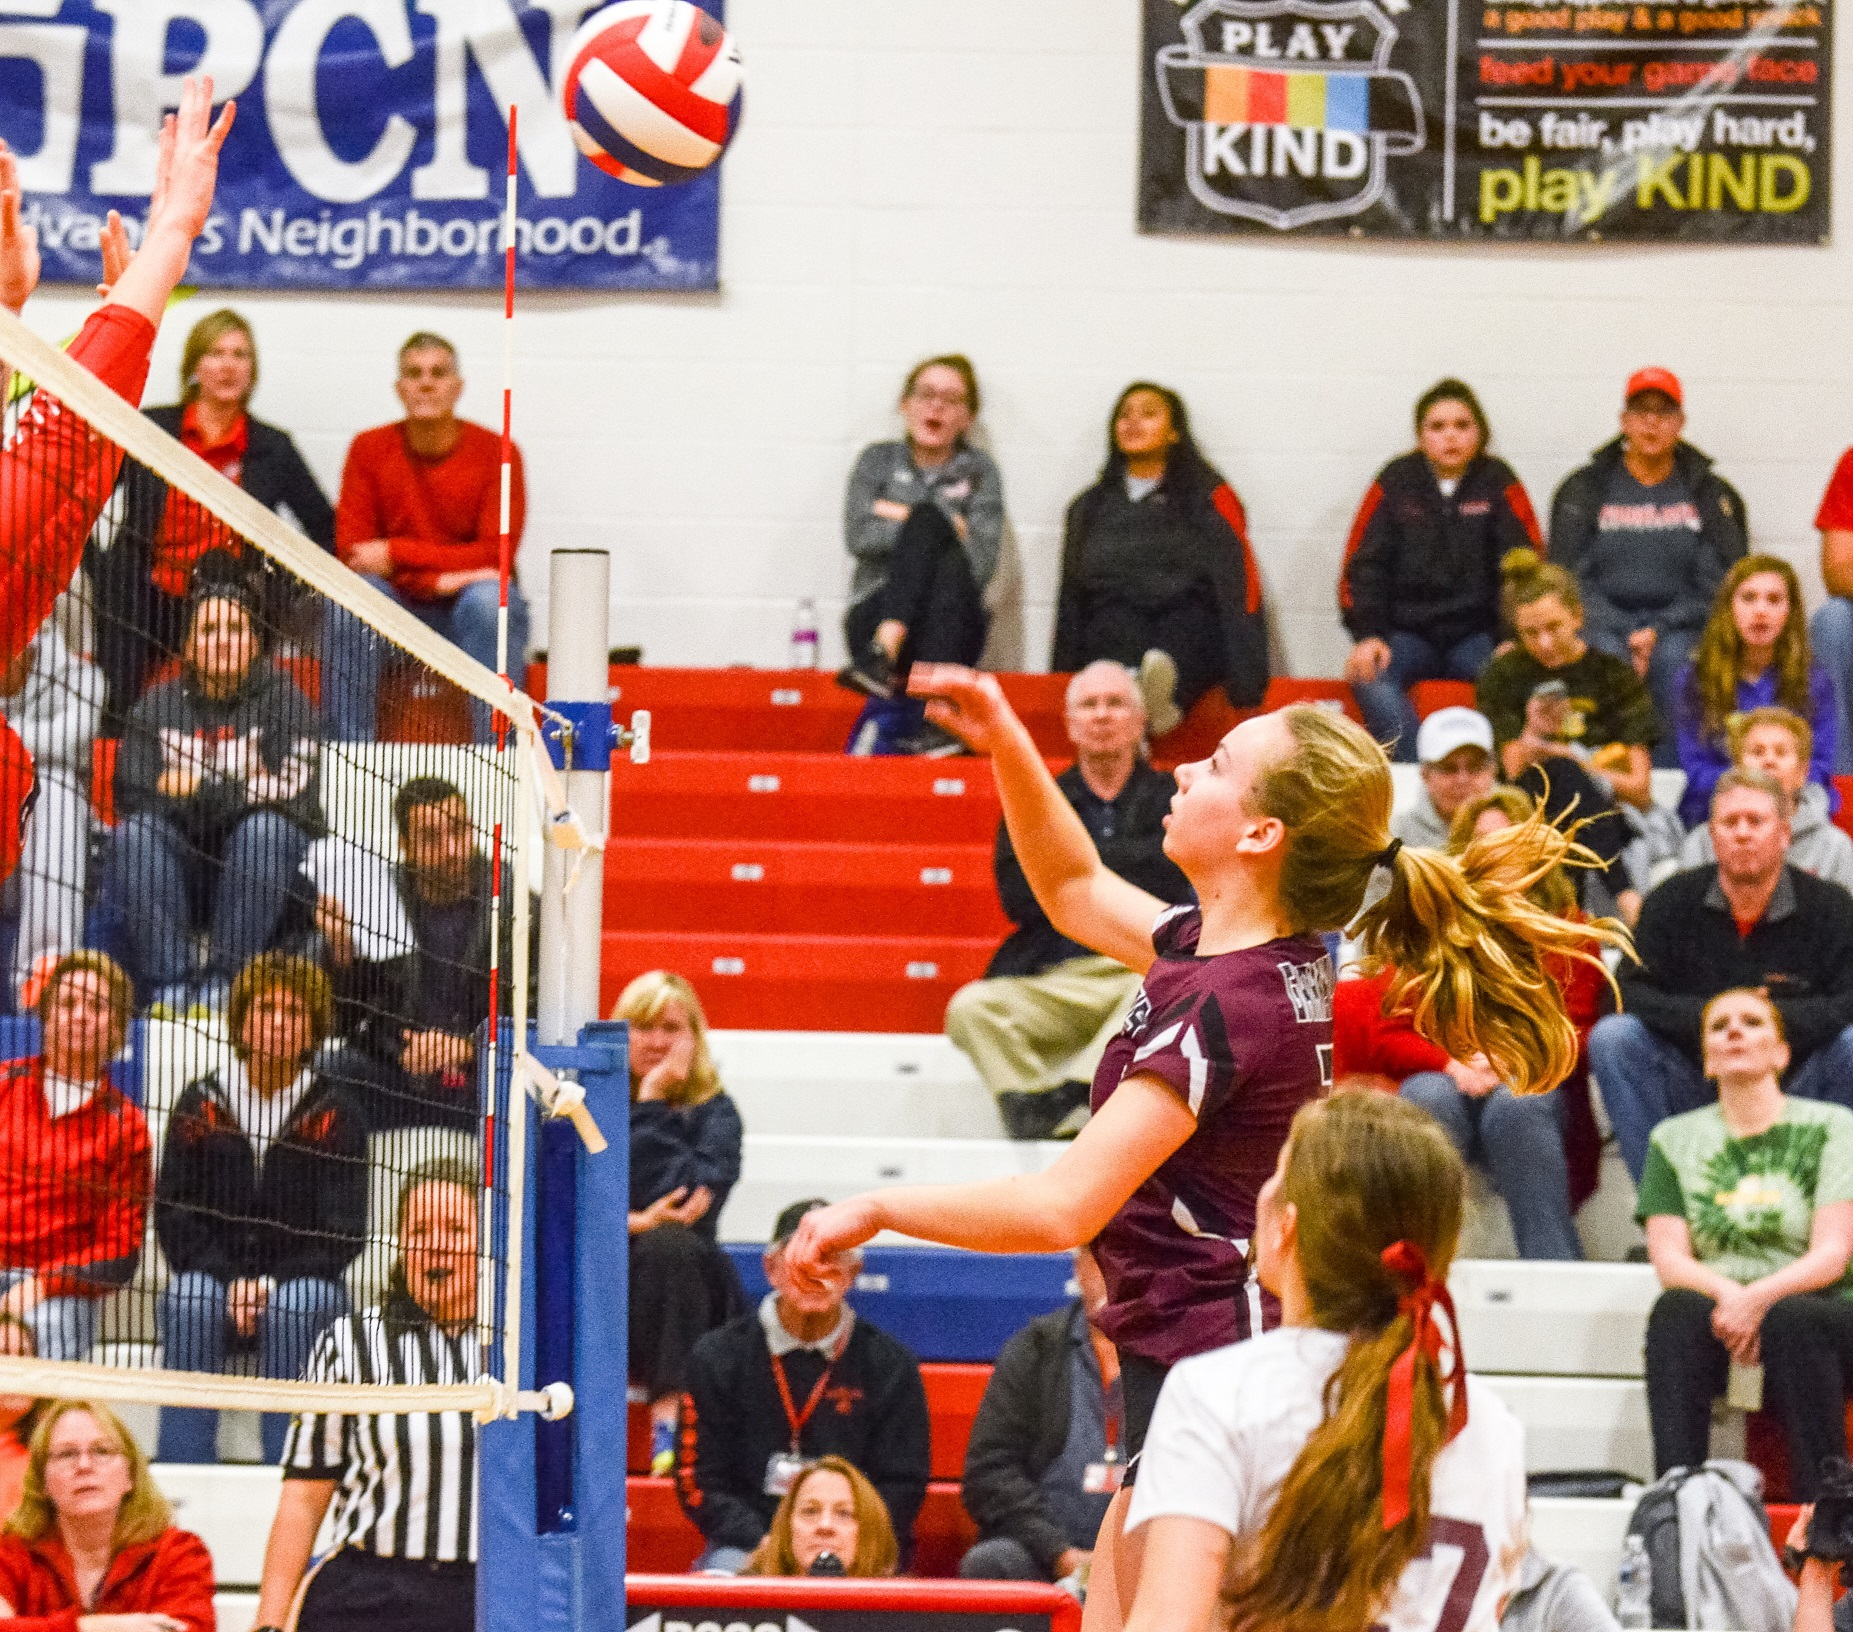 Garnet Valley's Nicole Loan delivers a shot over the net Saturday. Loan accounted for 14 kills and four blocks in the Jaguars' 3-2 win over Parkland in the PIAA Class 4A final. (For Digital First Media/Tami Knopsnyder)